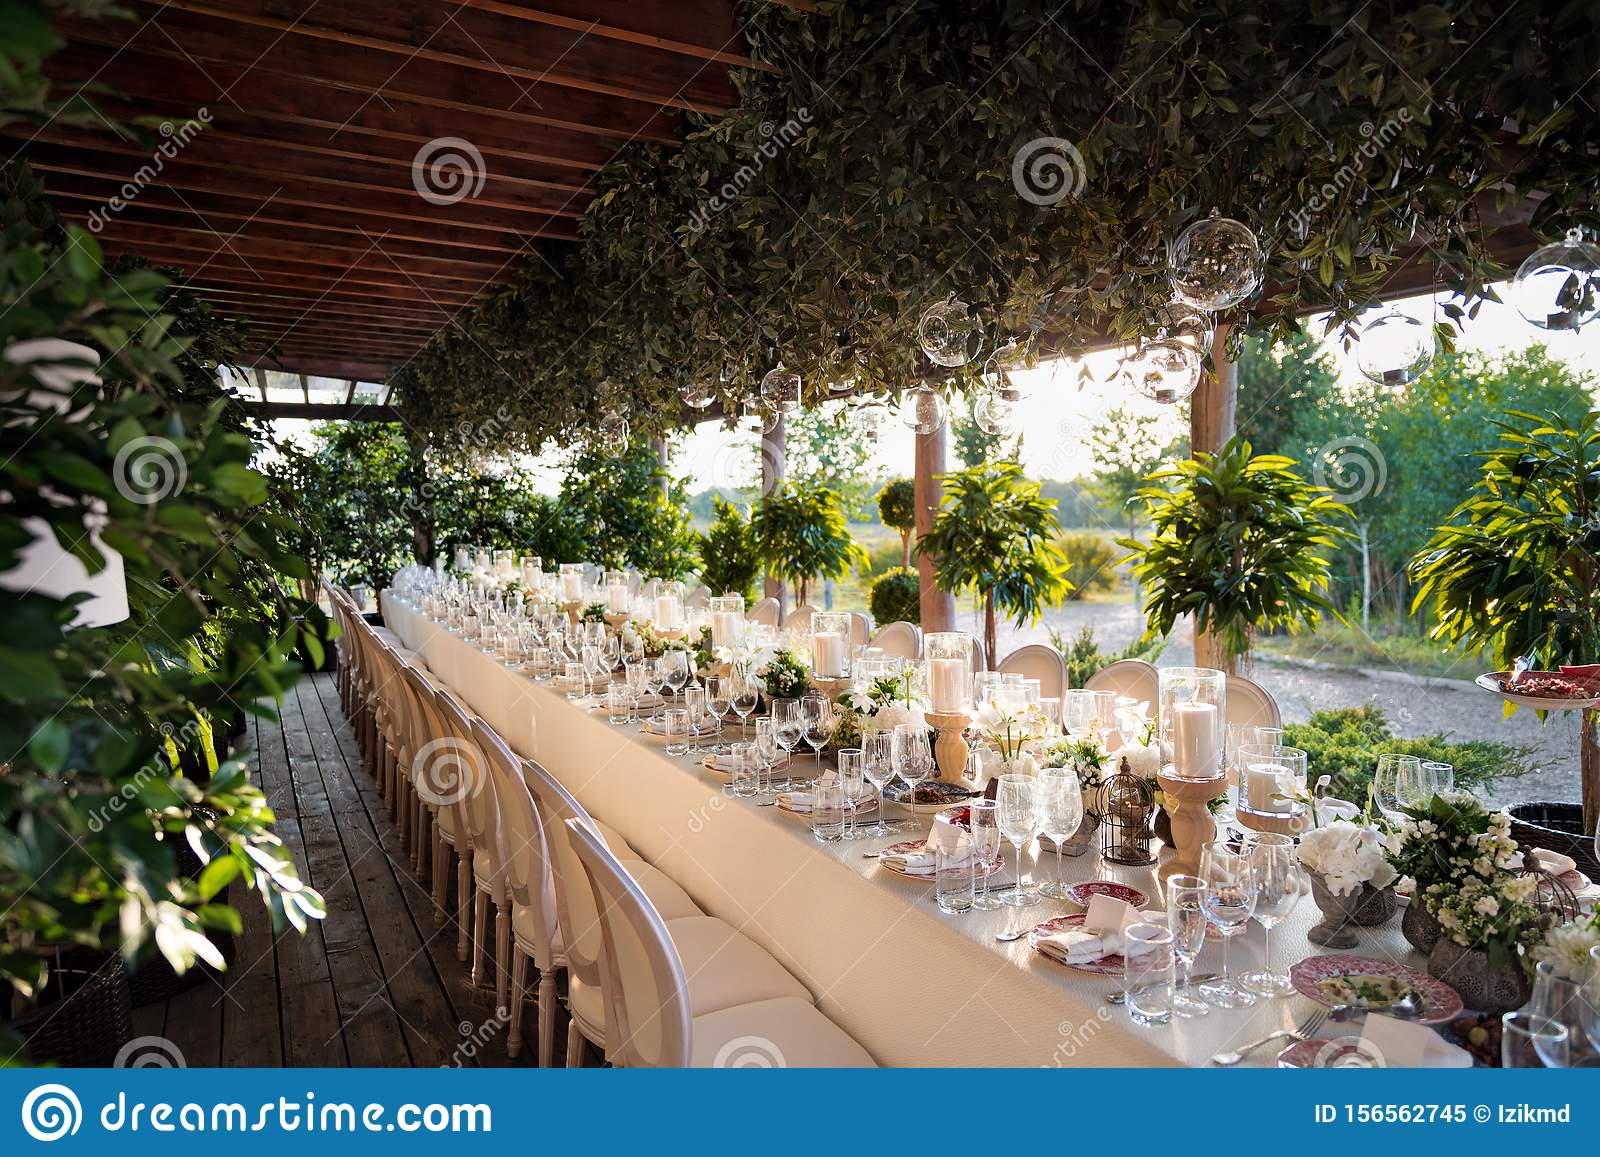 Outdoor Wedding Celebration At A Restaurant Festive Table Setting Catering Wedding In Rustic Style In Summer Stock Image Image Of Lunch Boho 156562745